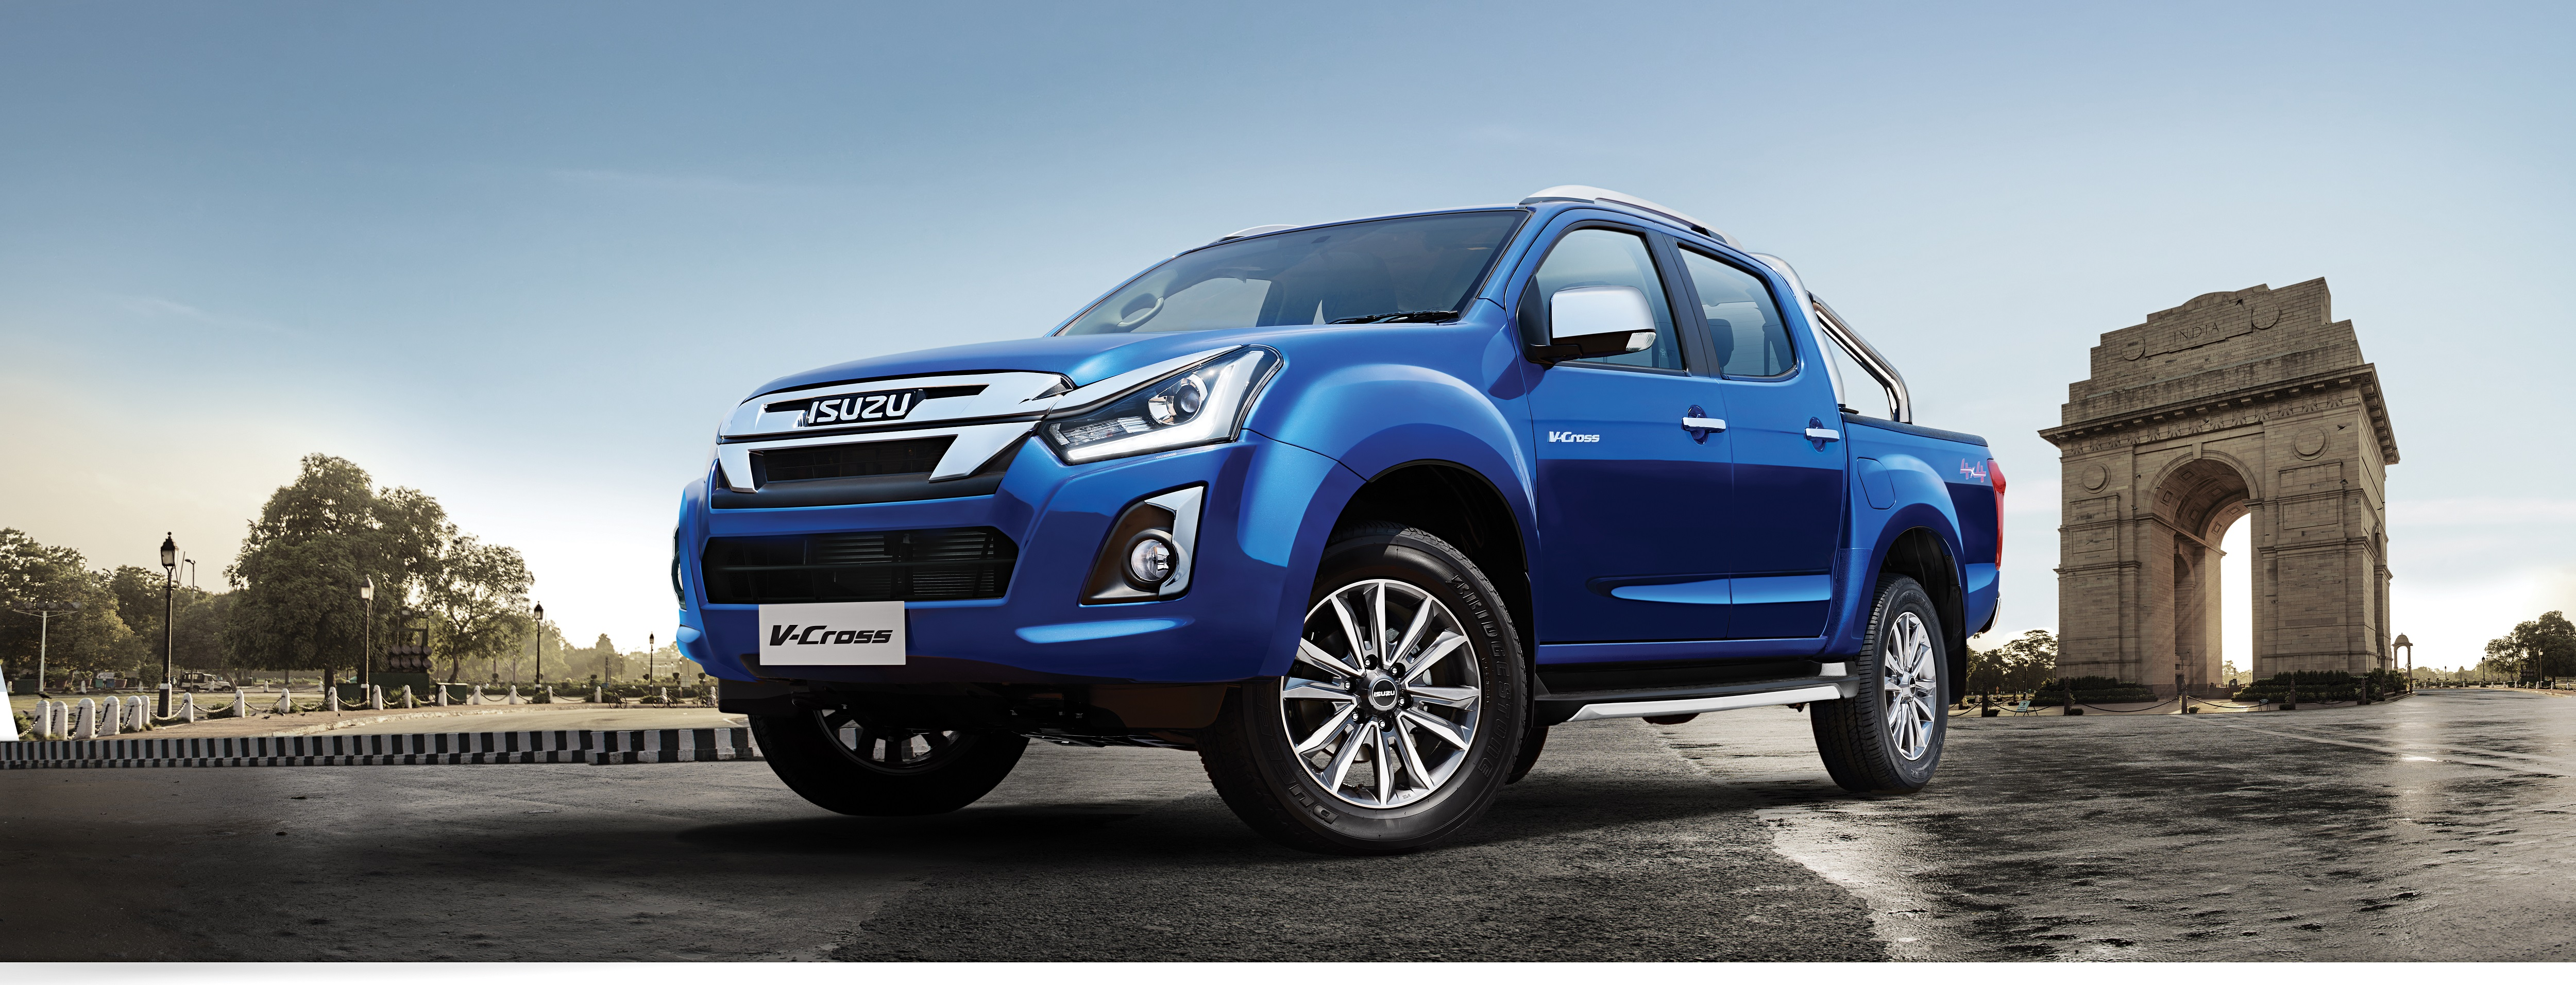 Lifestyle and Adventure gets a whole new feel. The all new V-Cross is here